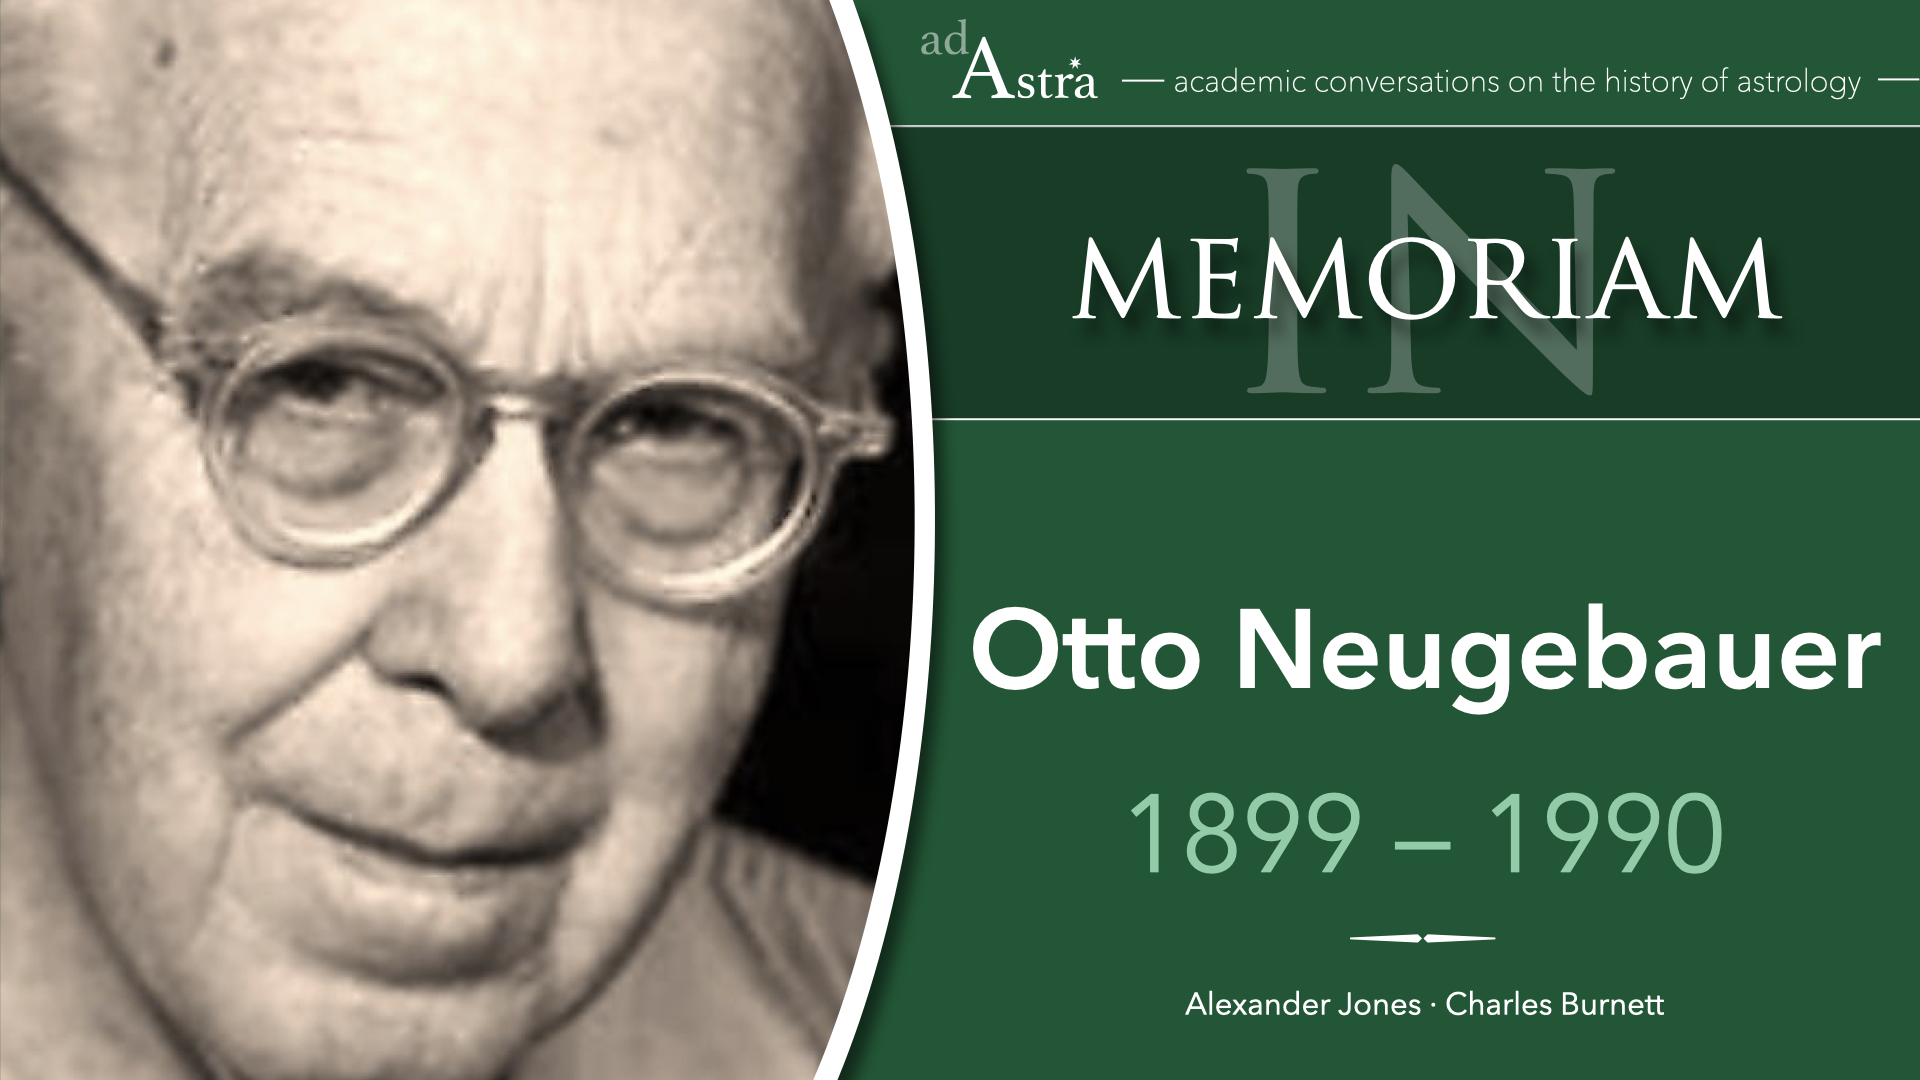 Otto Neugebauer (1899-1990): From Antiquity To The Renaissance